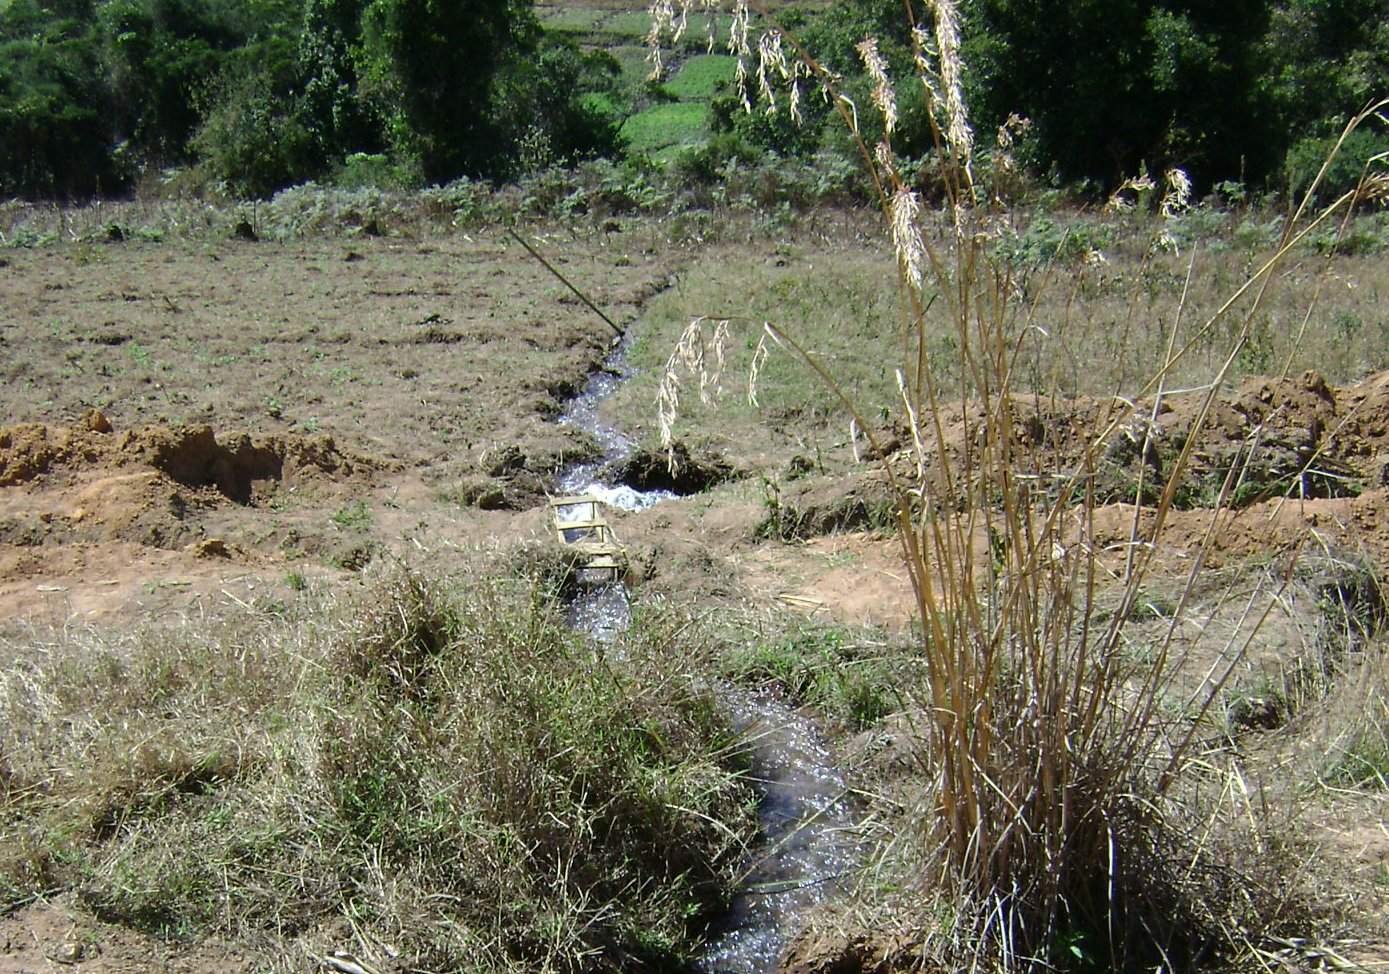 Irrigation water crosses the trench by a small wood aquaduct